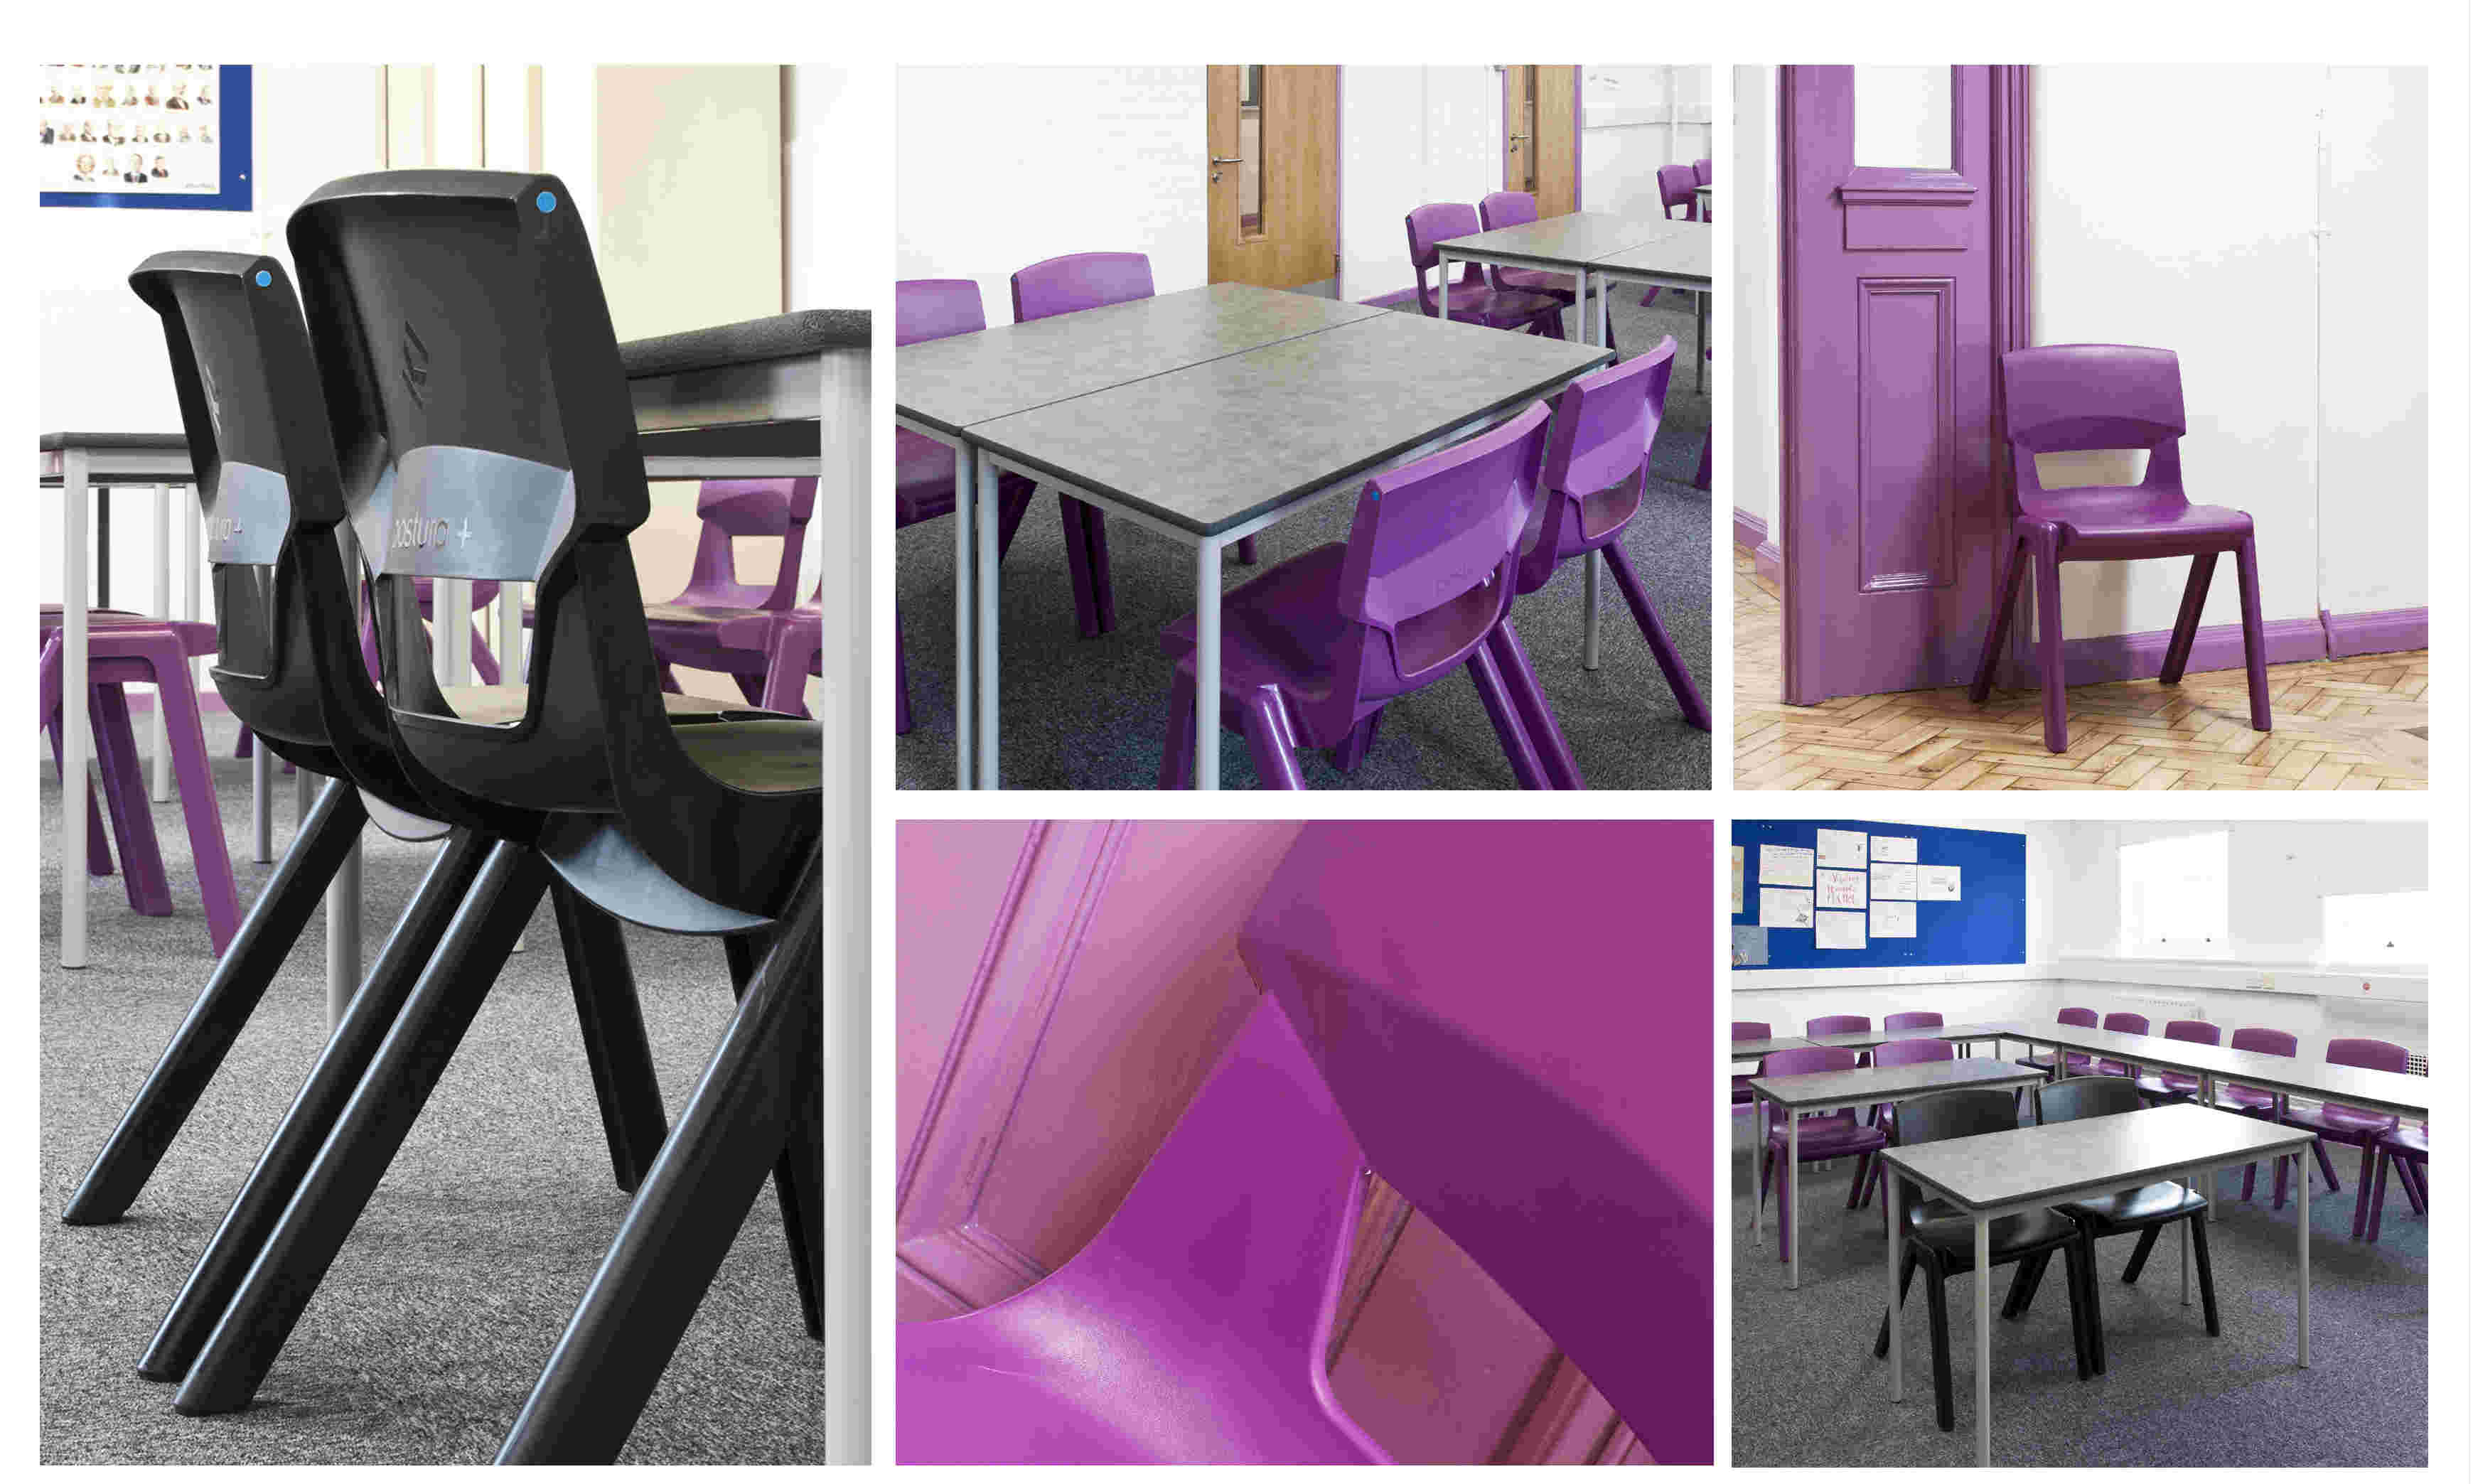 KI Postura+ chairs selected for New City College's colour co-ordinated refurbishment